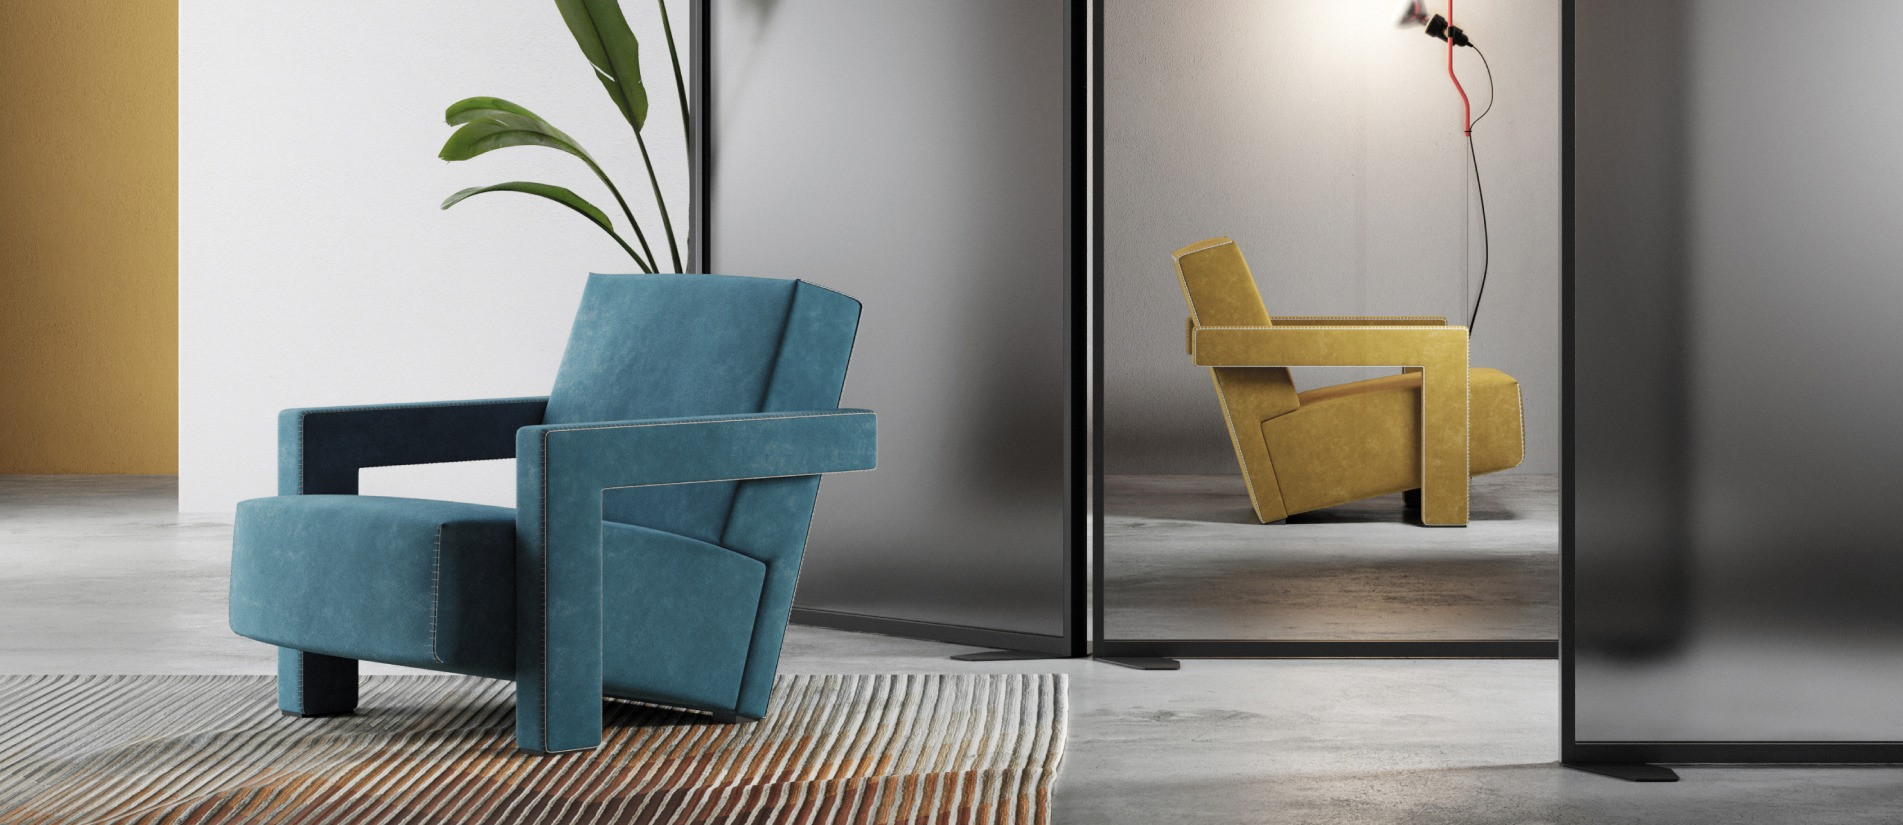 A blue chair and yellow chair in two offices divided by a Transwall floor divider